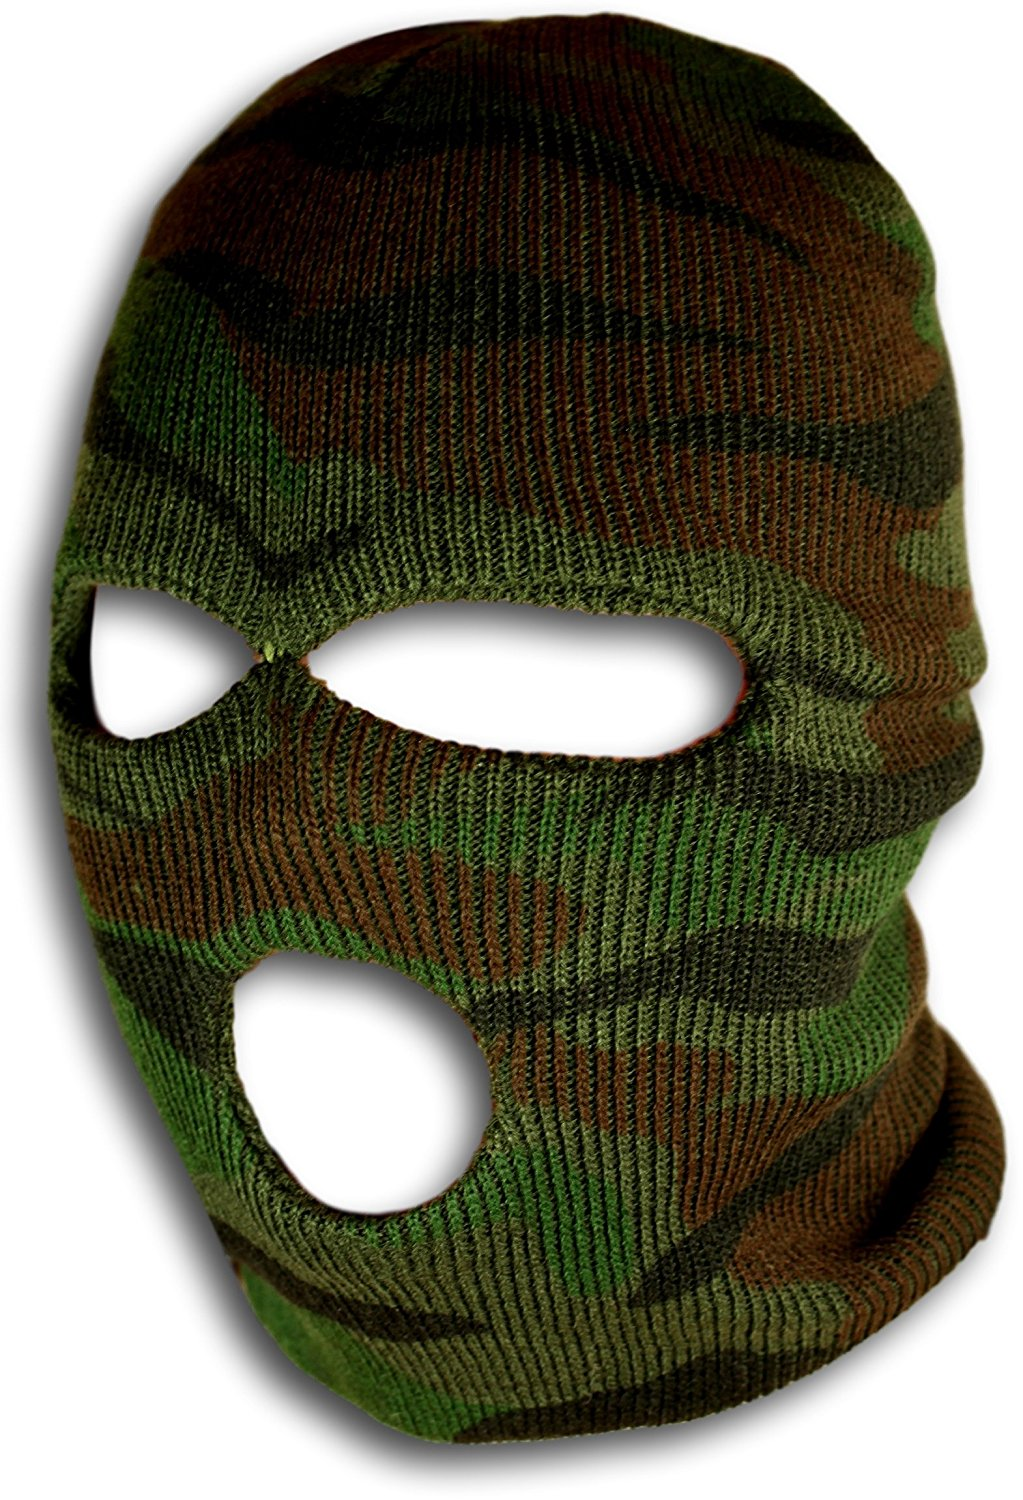 Woodland Camo Ski Mask Camouflage Gear by bogo Brands by bogo Brands